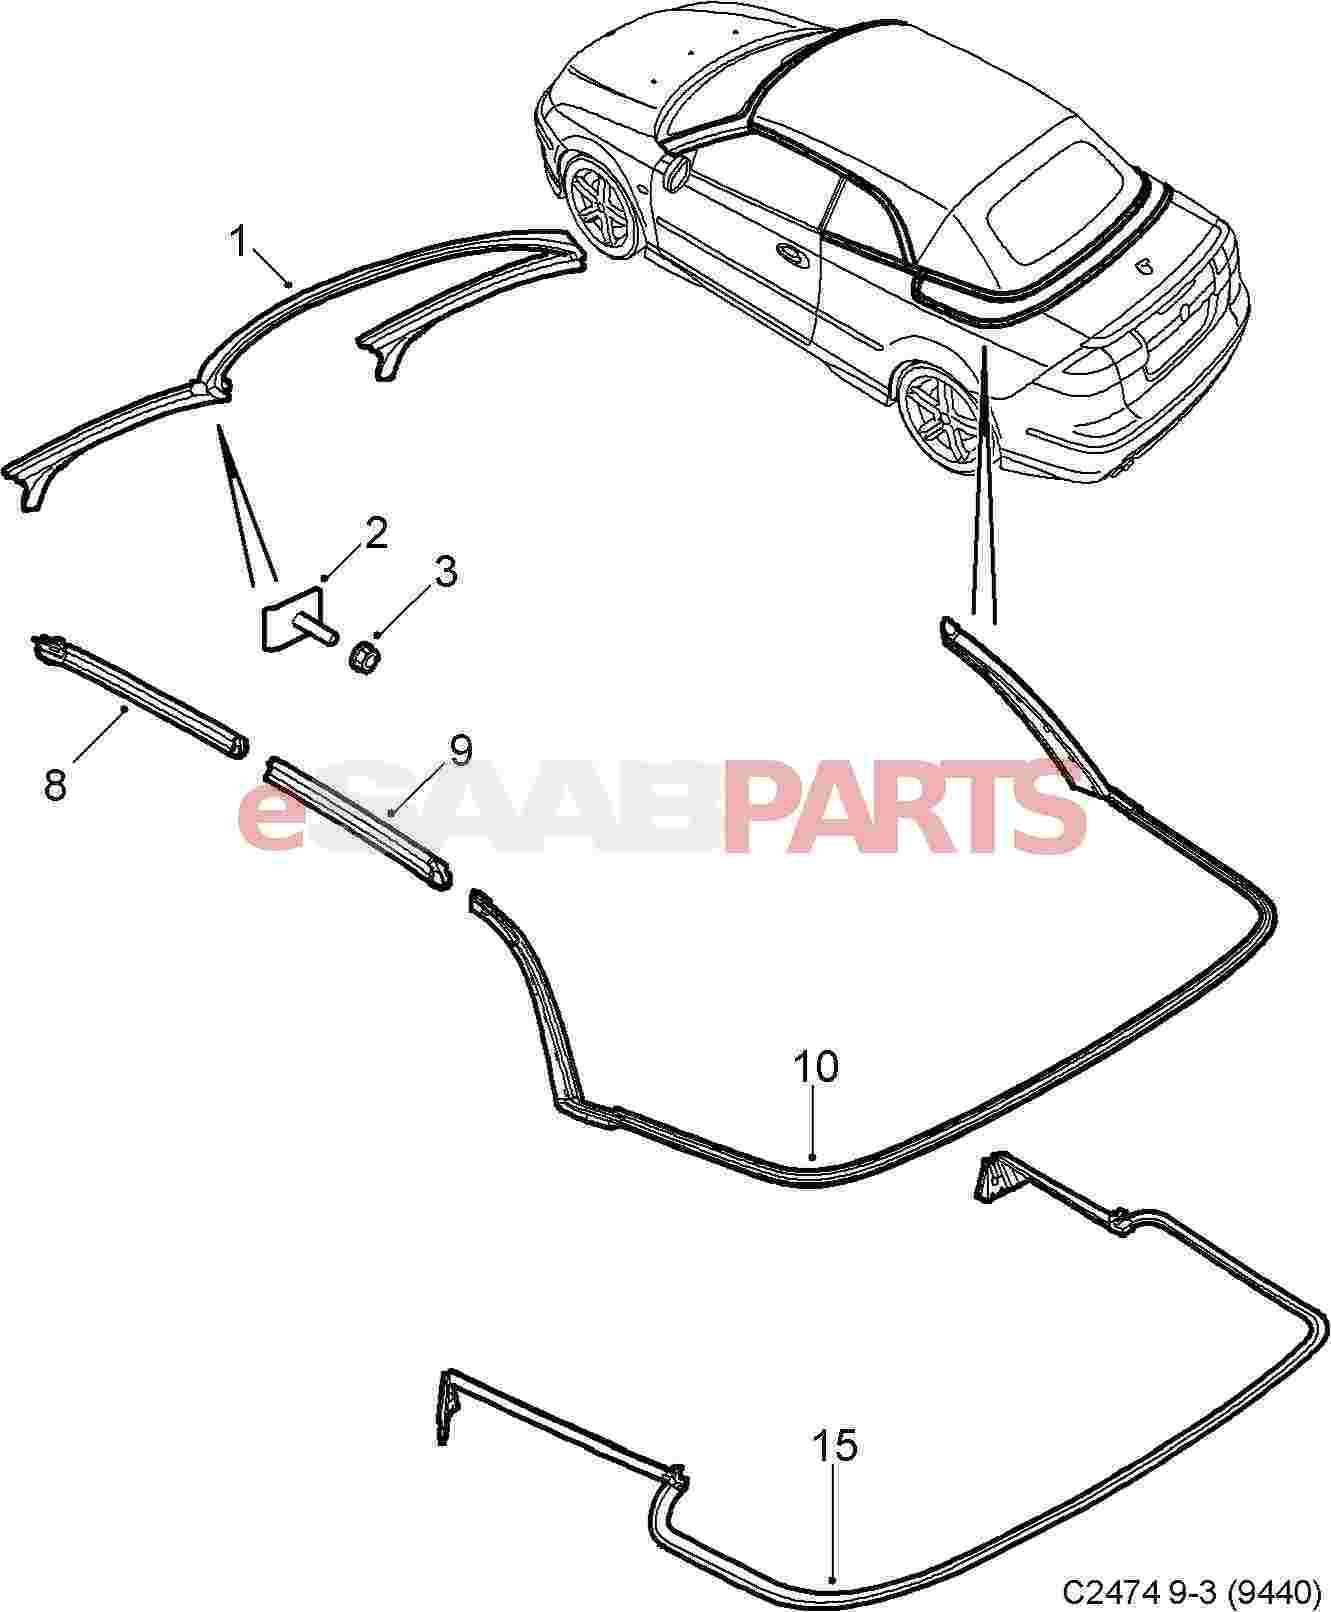 2011 Chevy Equinox Fuel Filter Location | Wiring Diagram Database